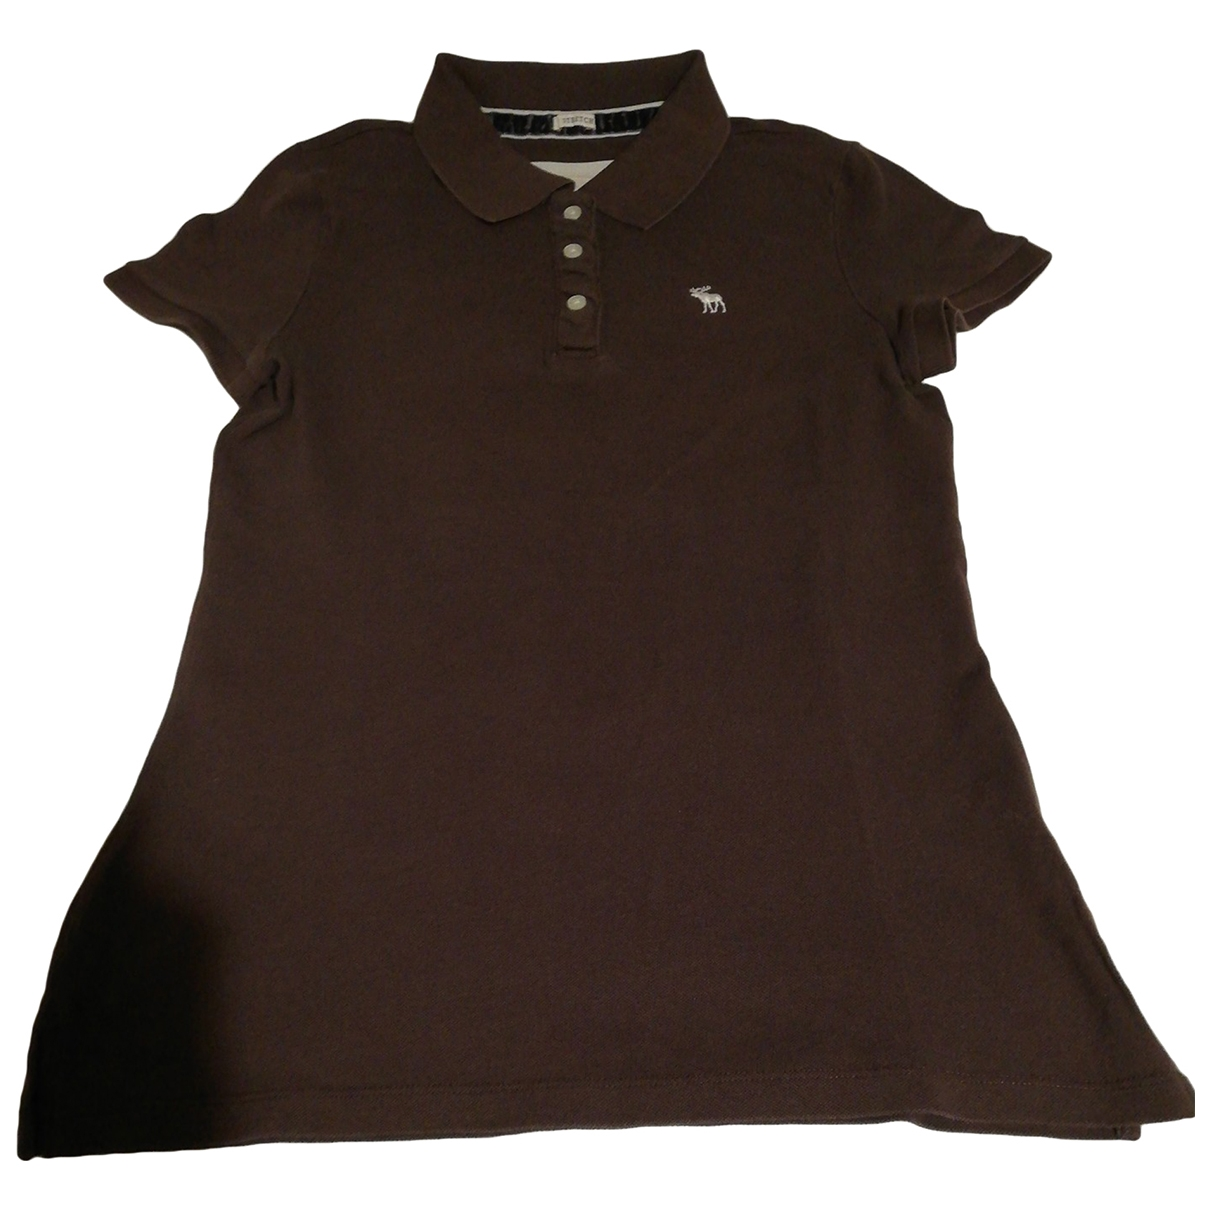 Abercrombie & Fitch \N Brown Cotton  top for Women L International